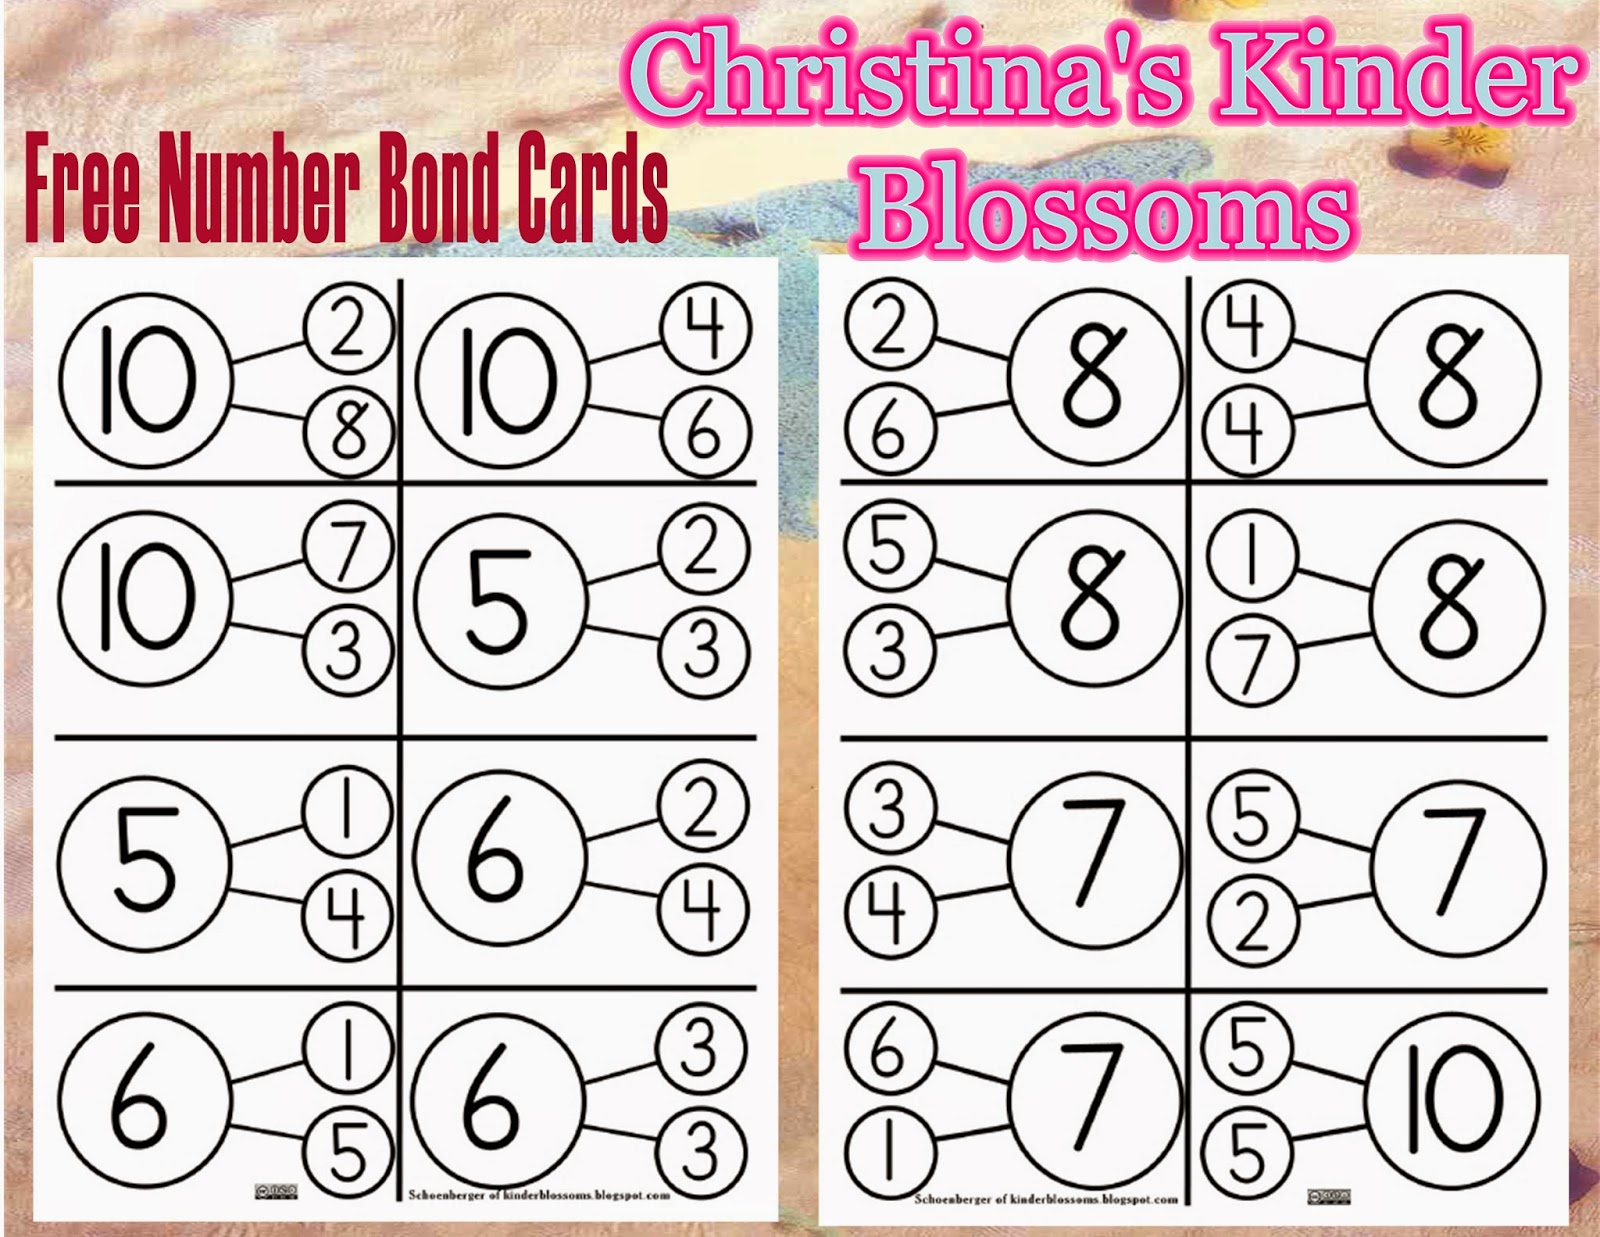 Christina\'s Kinder Blossoms: Number Bonds in kindergarten